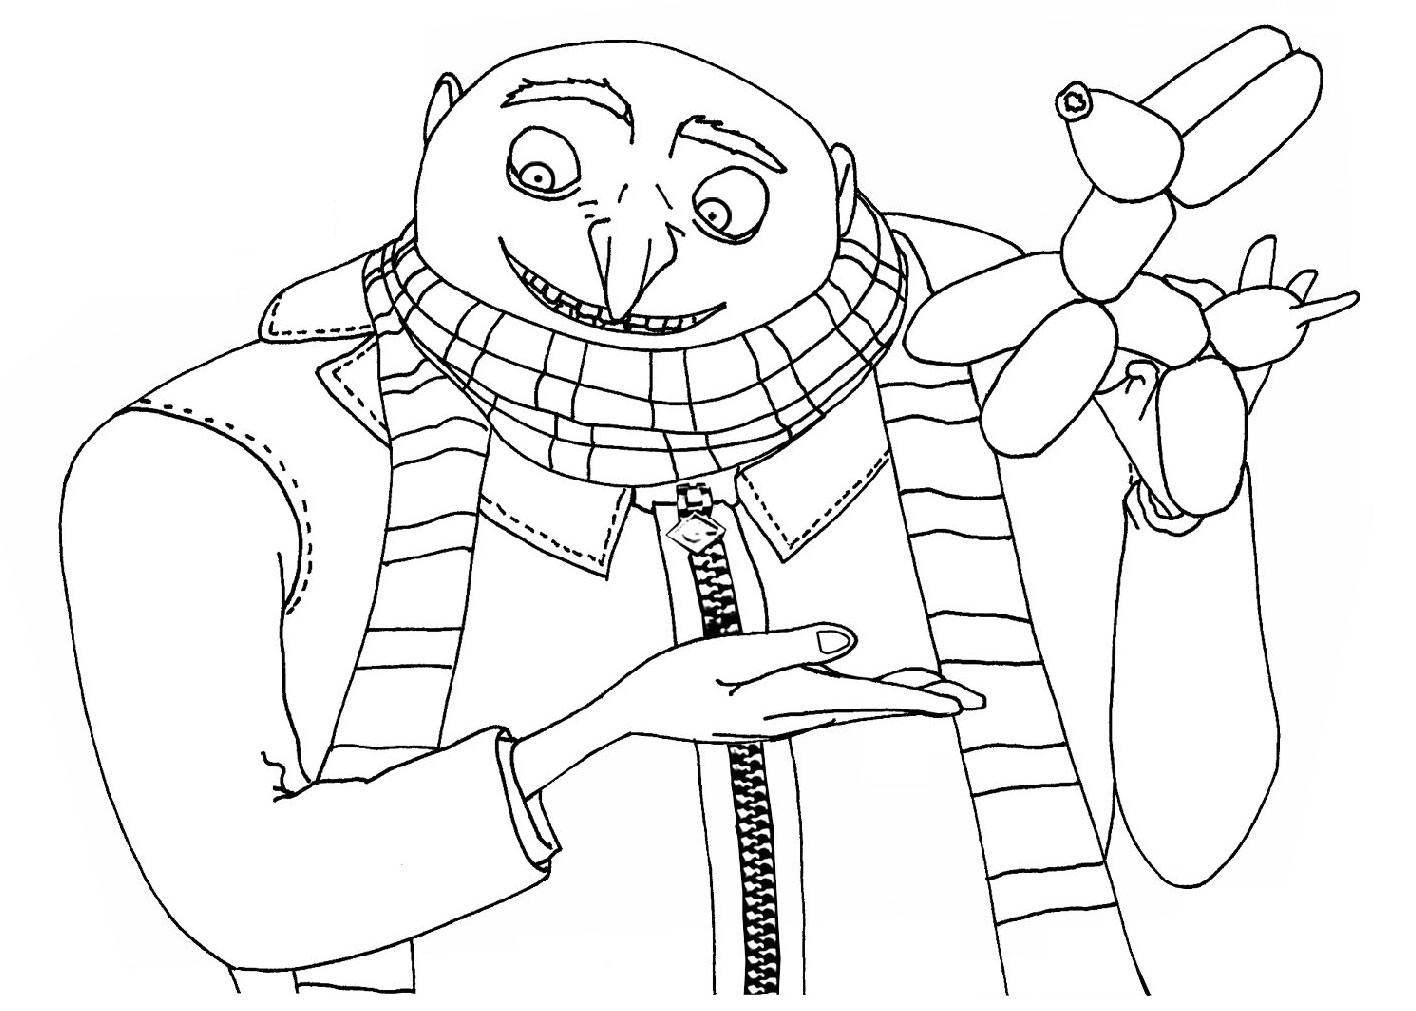 Despicable me 2 coloring pages coloring pages for Despicable me coloring pages printable